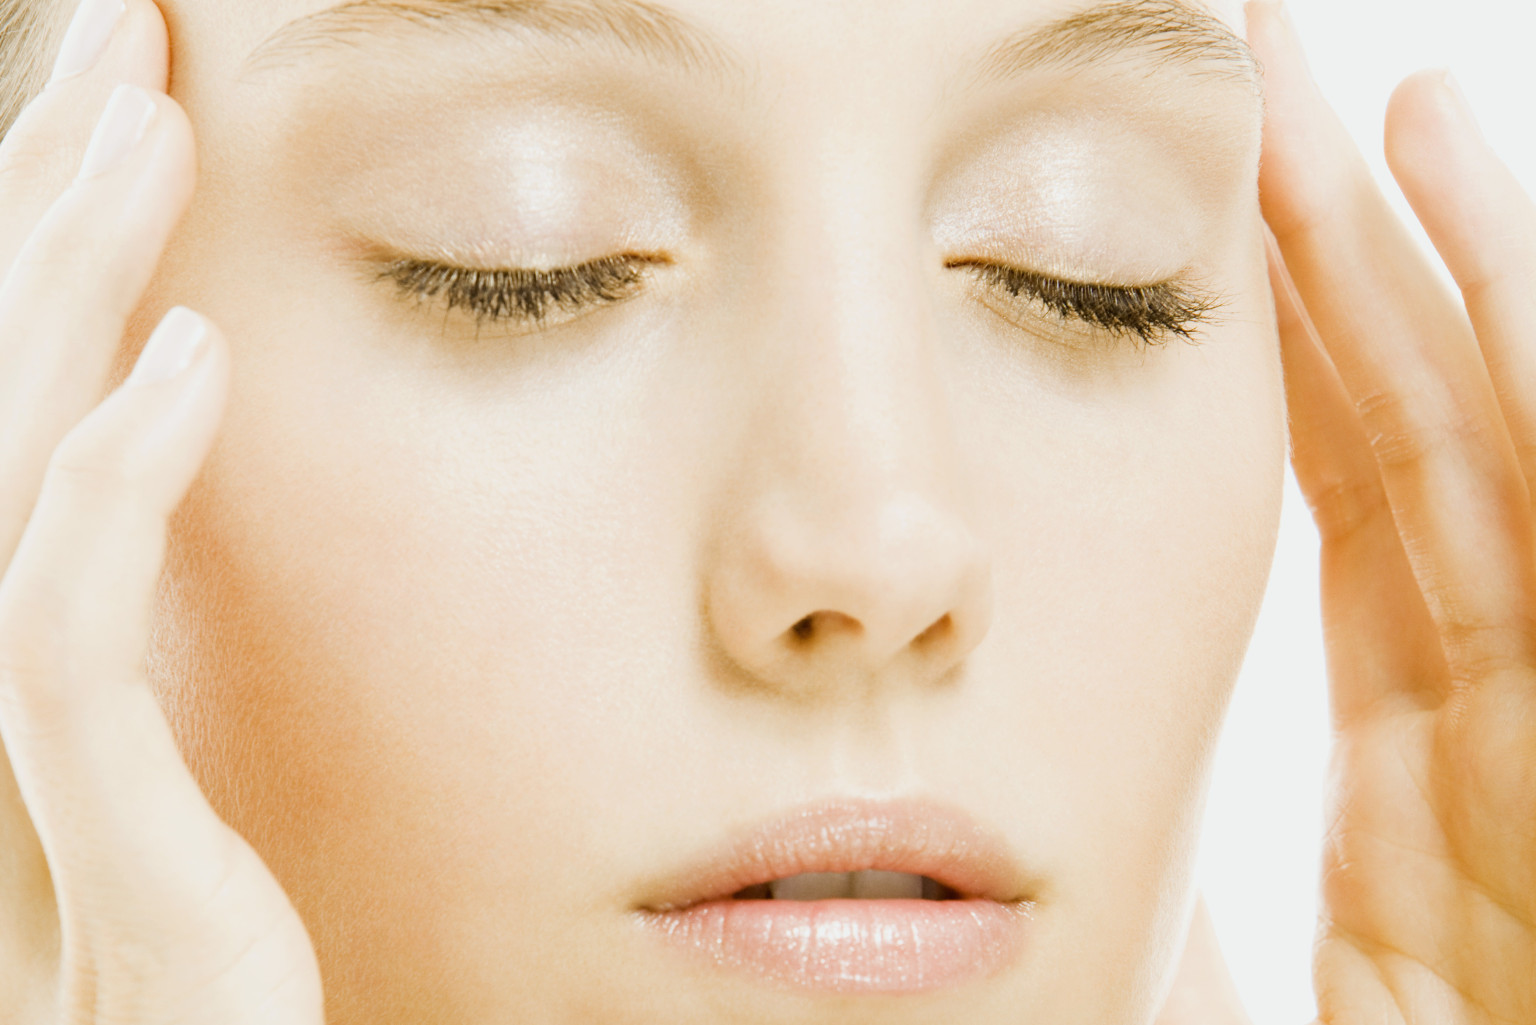 Massage Away Wrinkles With This 30 Minute Facial Video